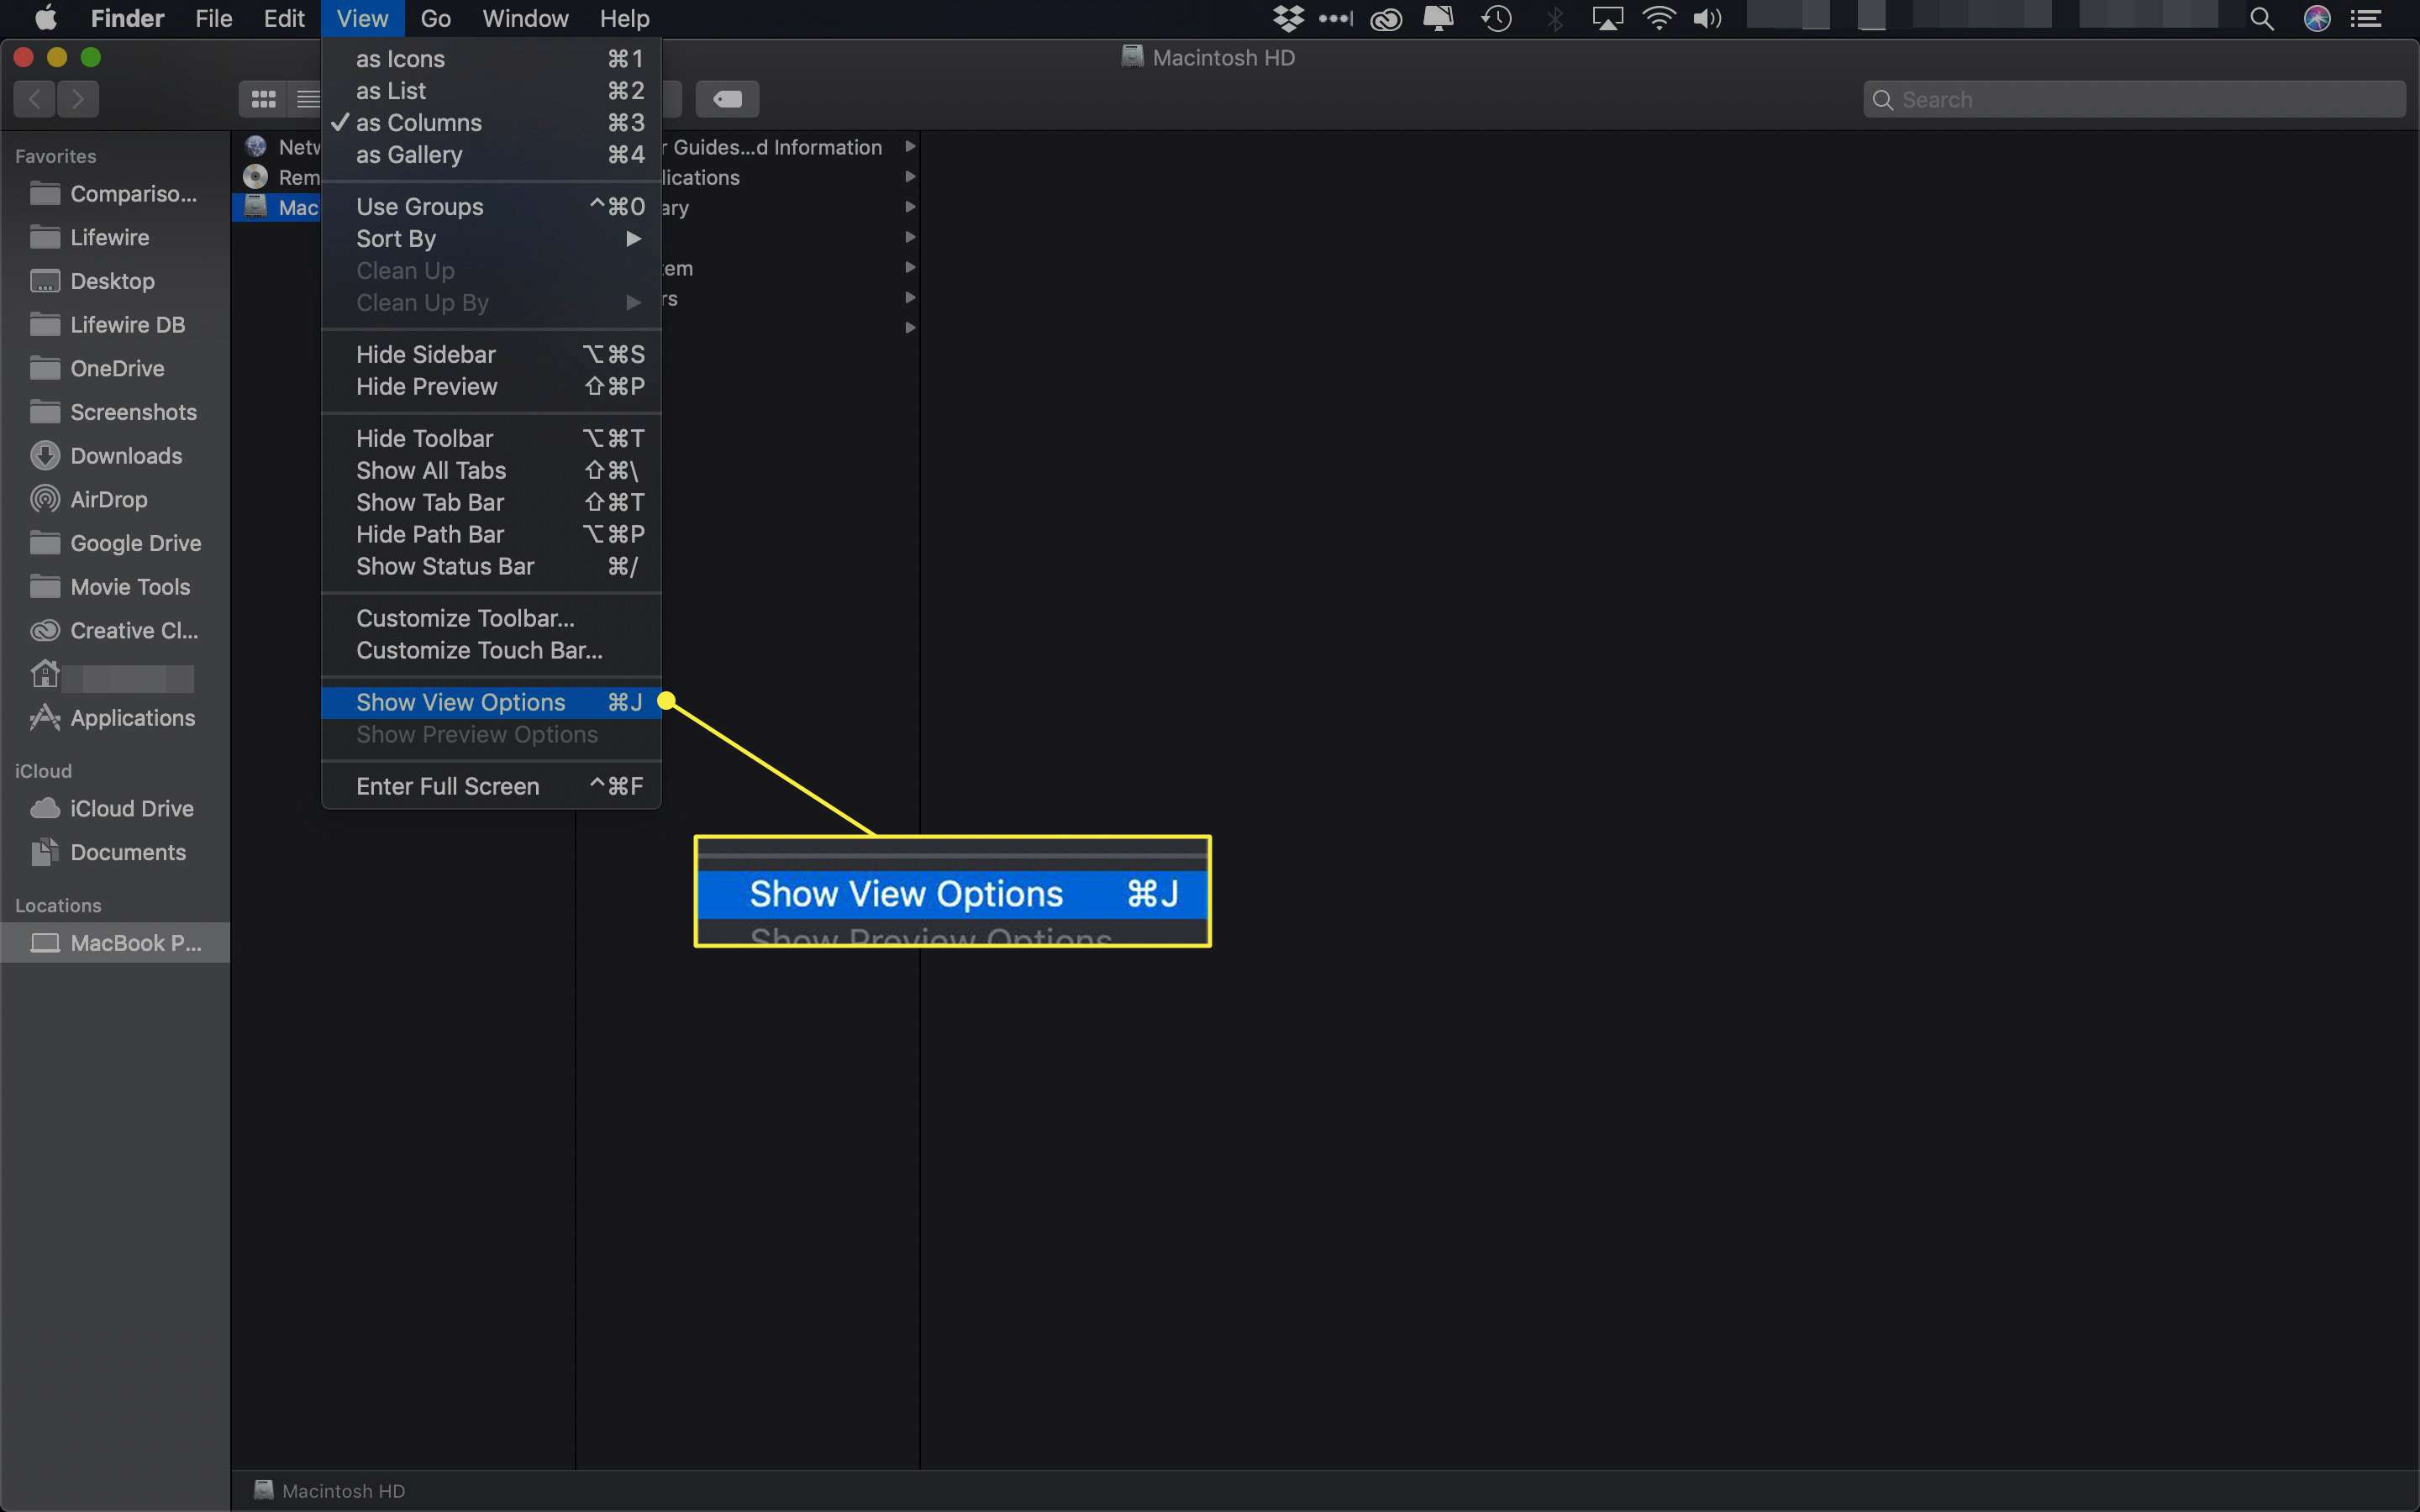 The Show View Options command in macOS